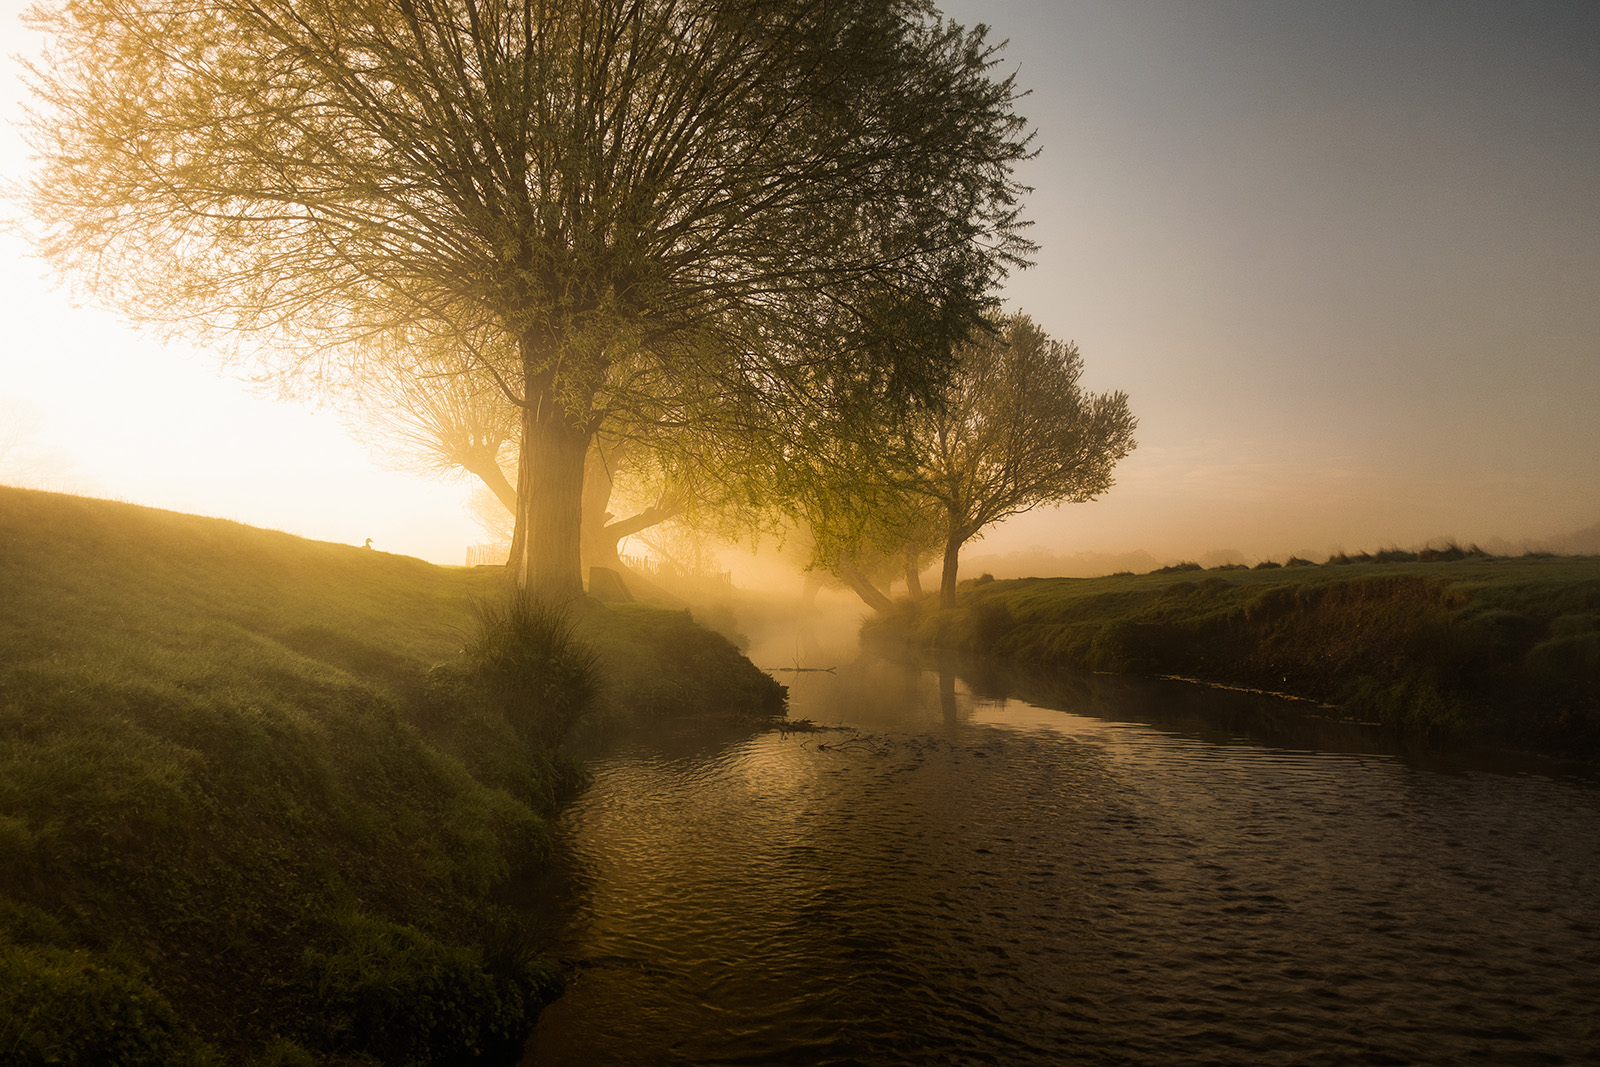 River of dreams by Simon Wilkes